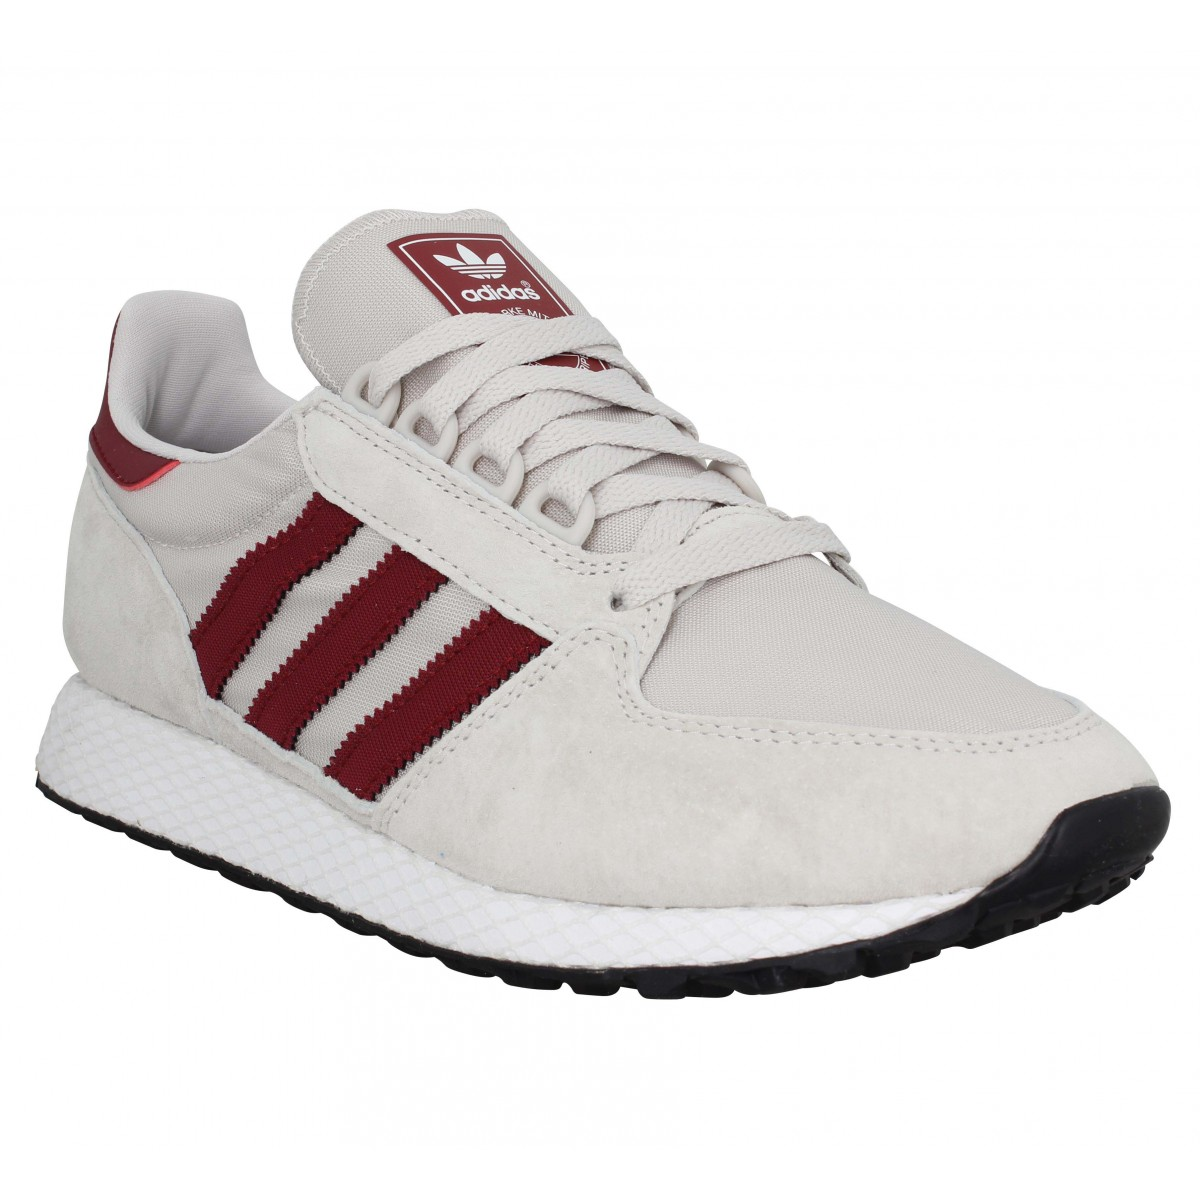 Baskets ADIDAS Forest Grove toile Homme Beige